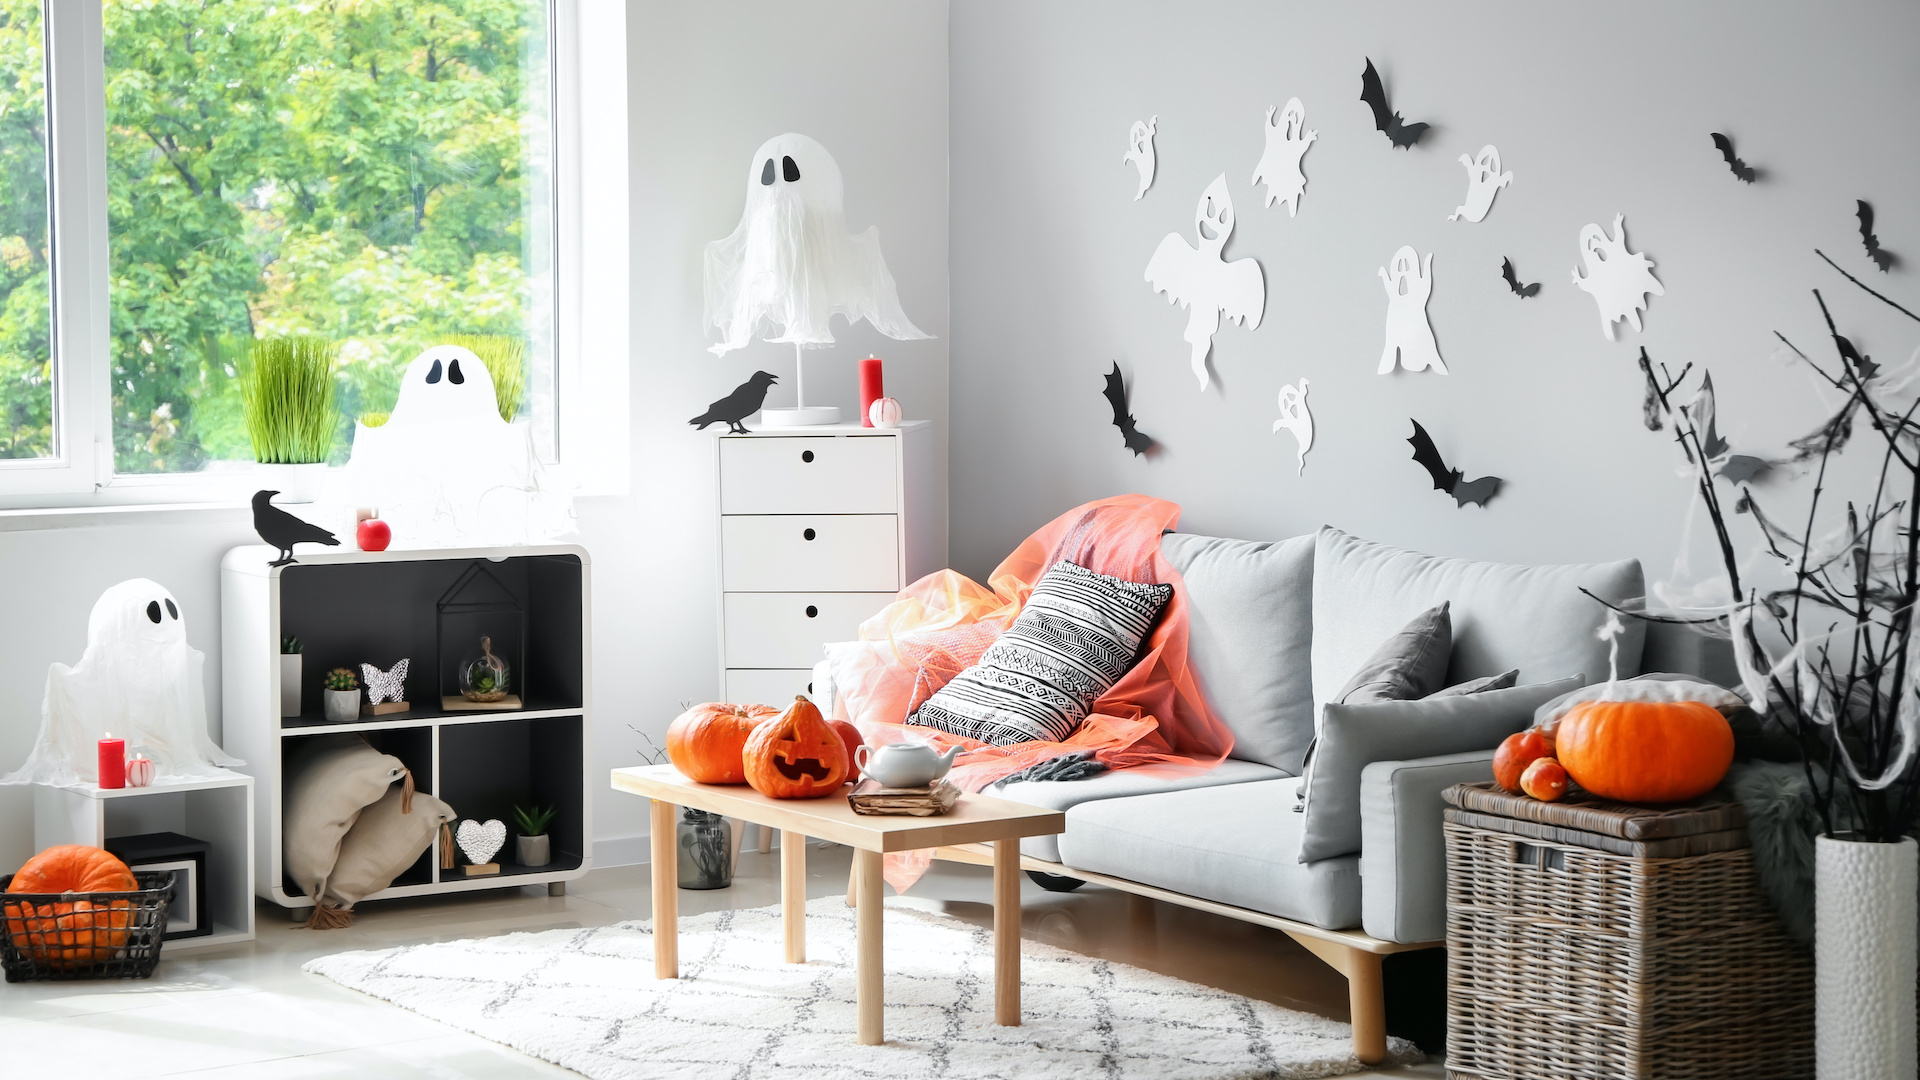 Just Some Boo-tiful Halloween Decor To Get You In The Spooky Spirit